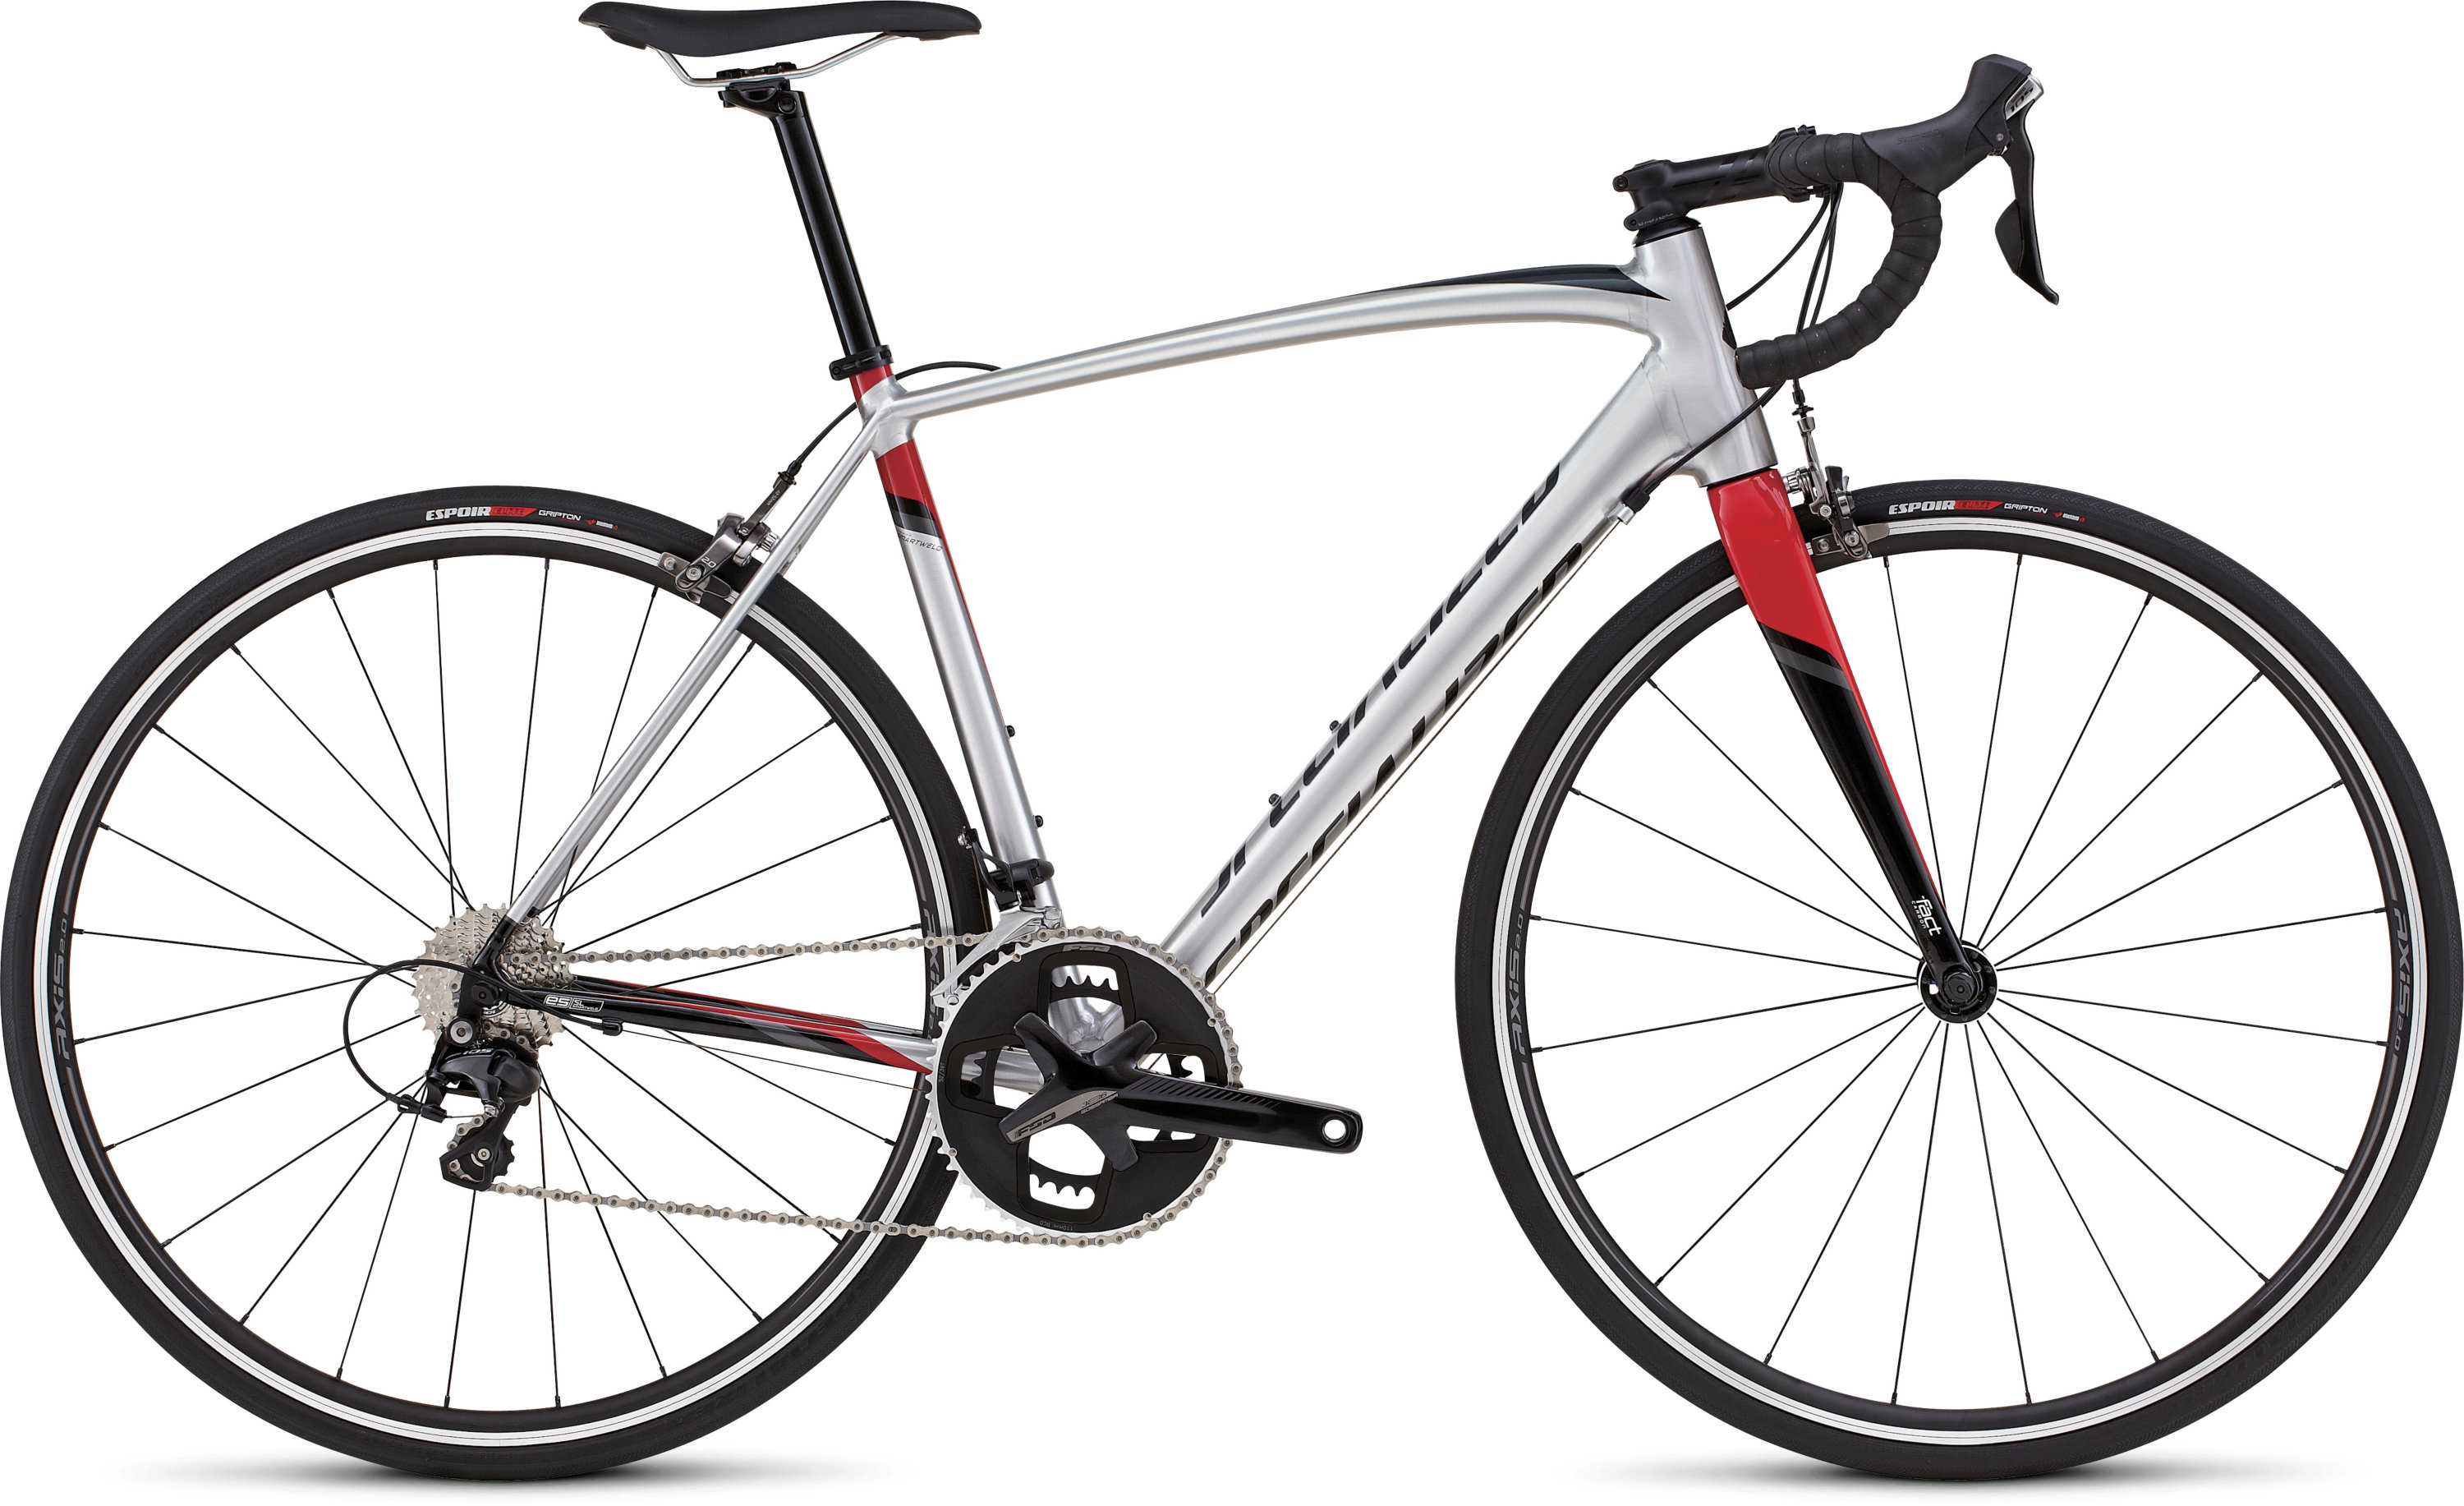 SPECIALIZED ALLEZ COMP DSW SL BRSH/TARBLK/RED/CHAR 49 - schneider-sports